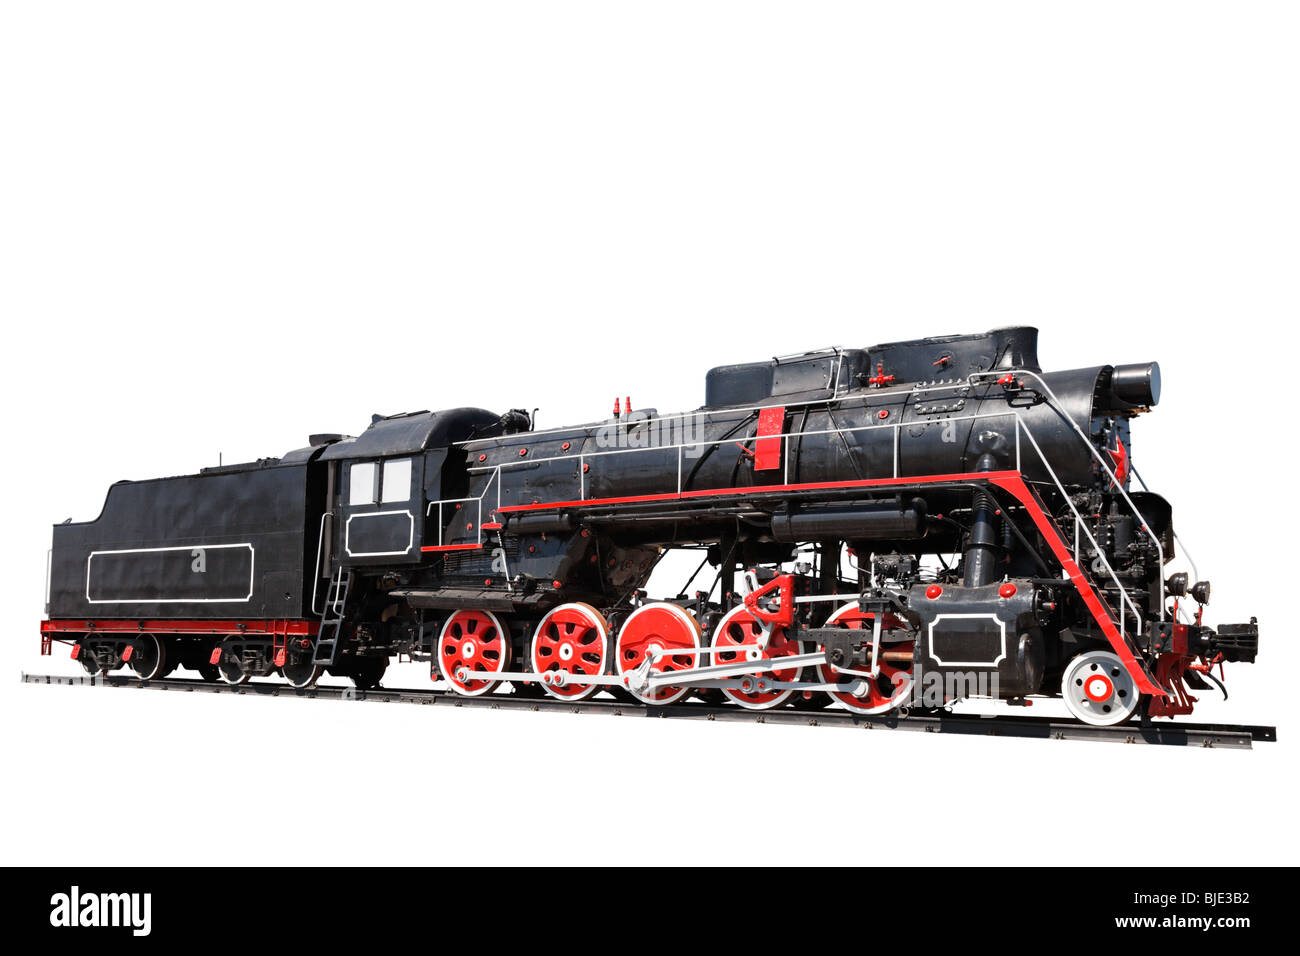 Old locomotive isolated - Stock Image